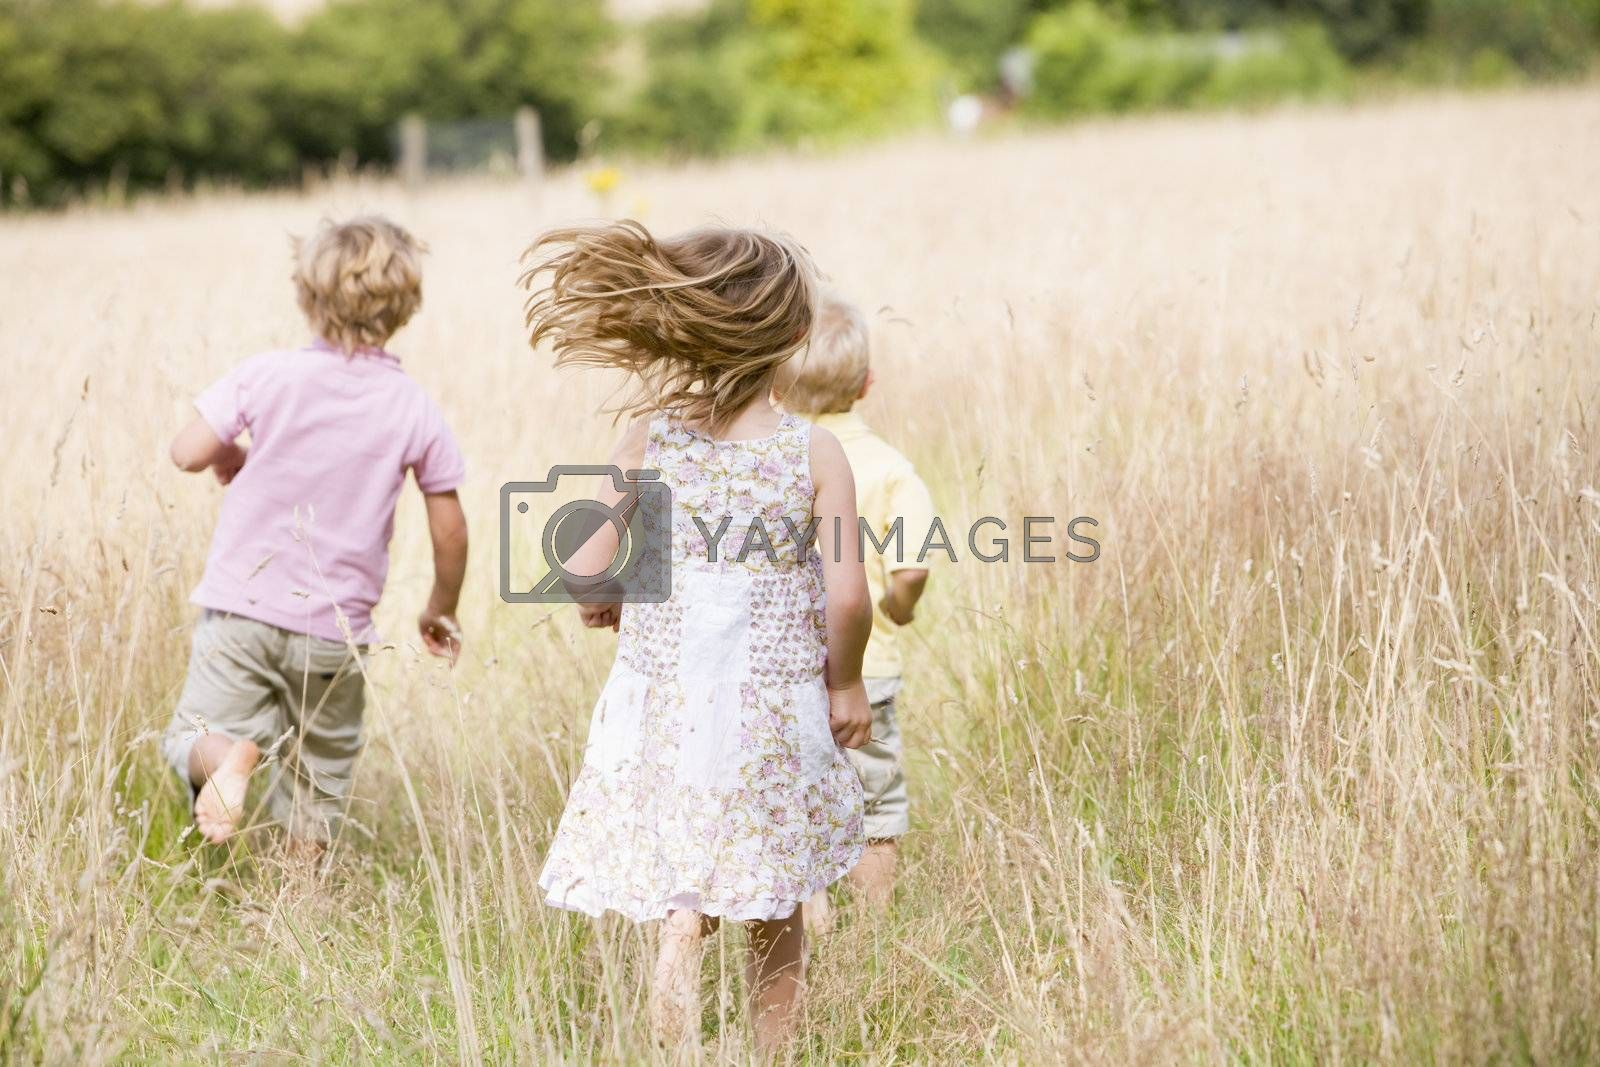 Three young children running outdoors by MonkeyBusiness